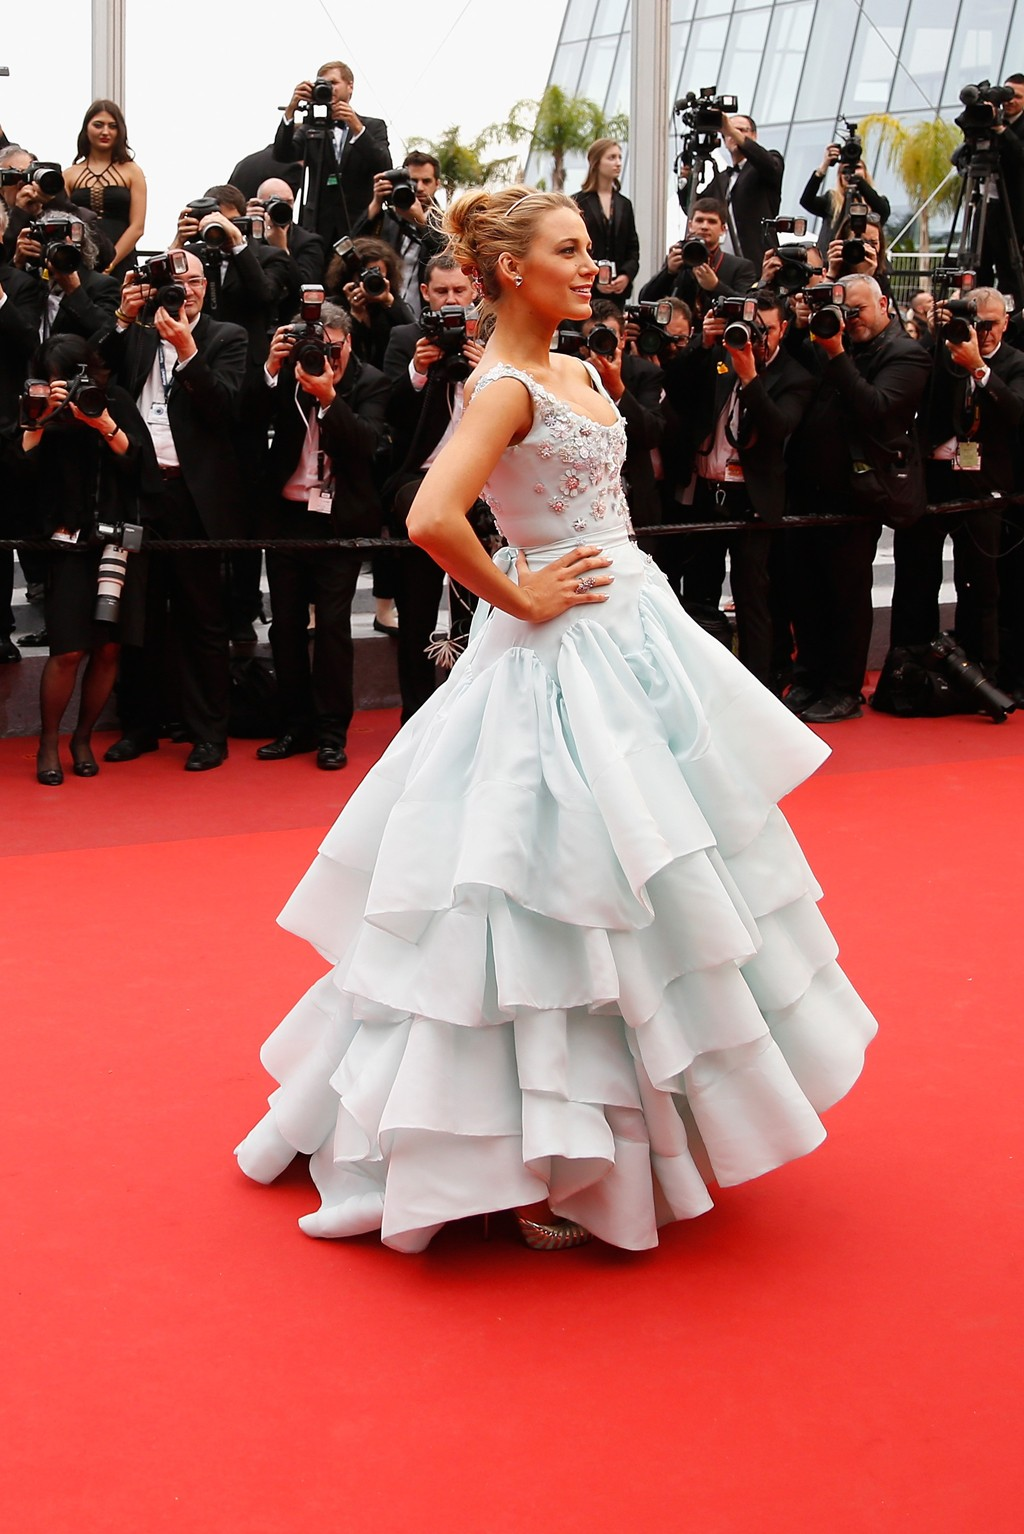 It's Official: Blake Lively Is the Queen of the 2016 Cannes Red Carpet